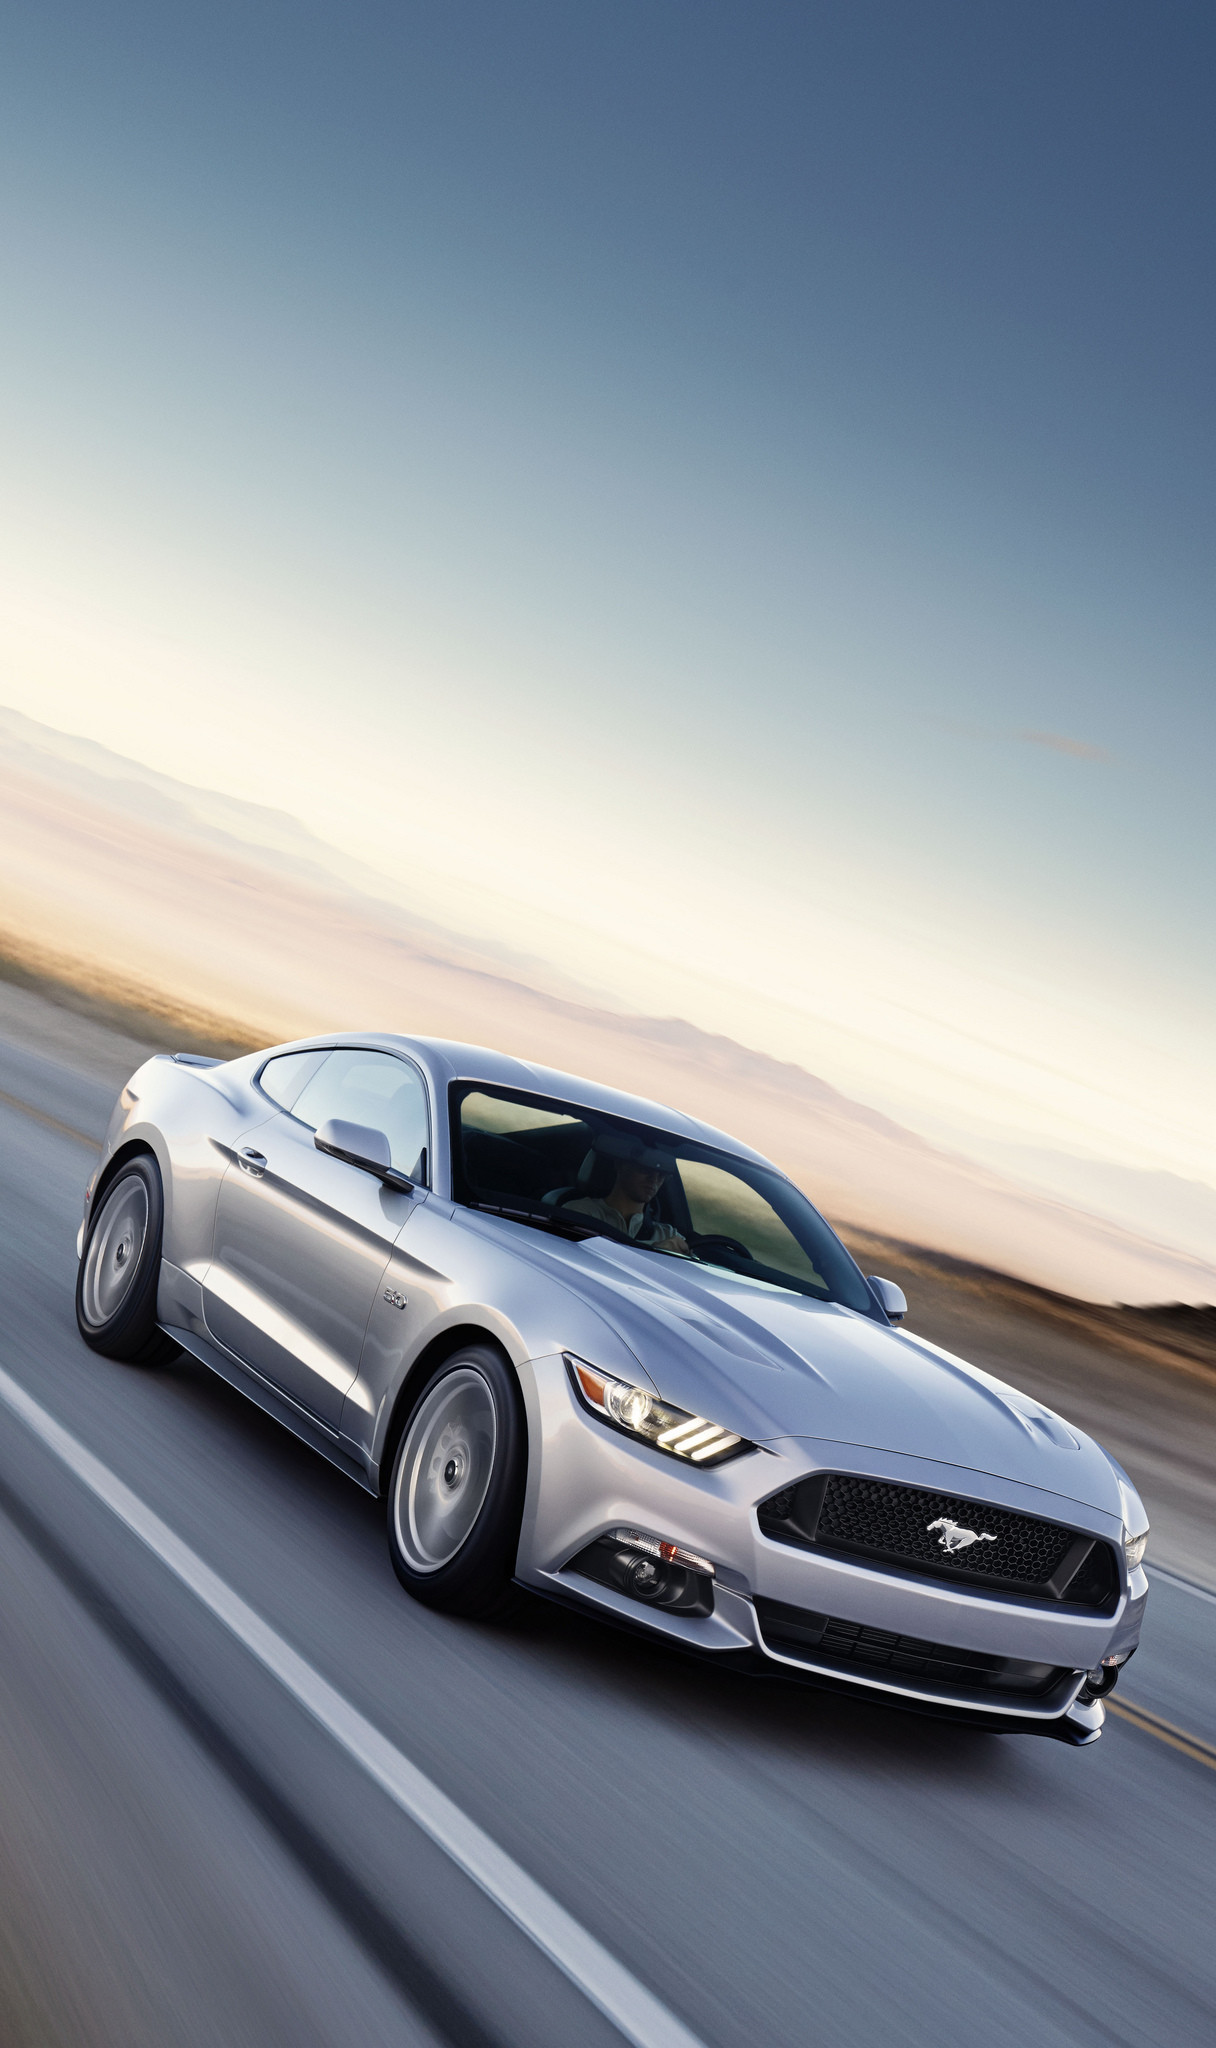 Mustang Iphone Wallpaper 76 Images